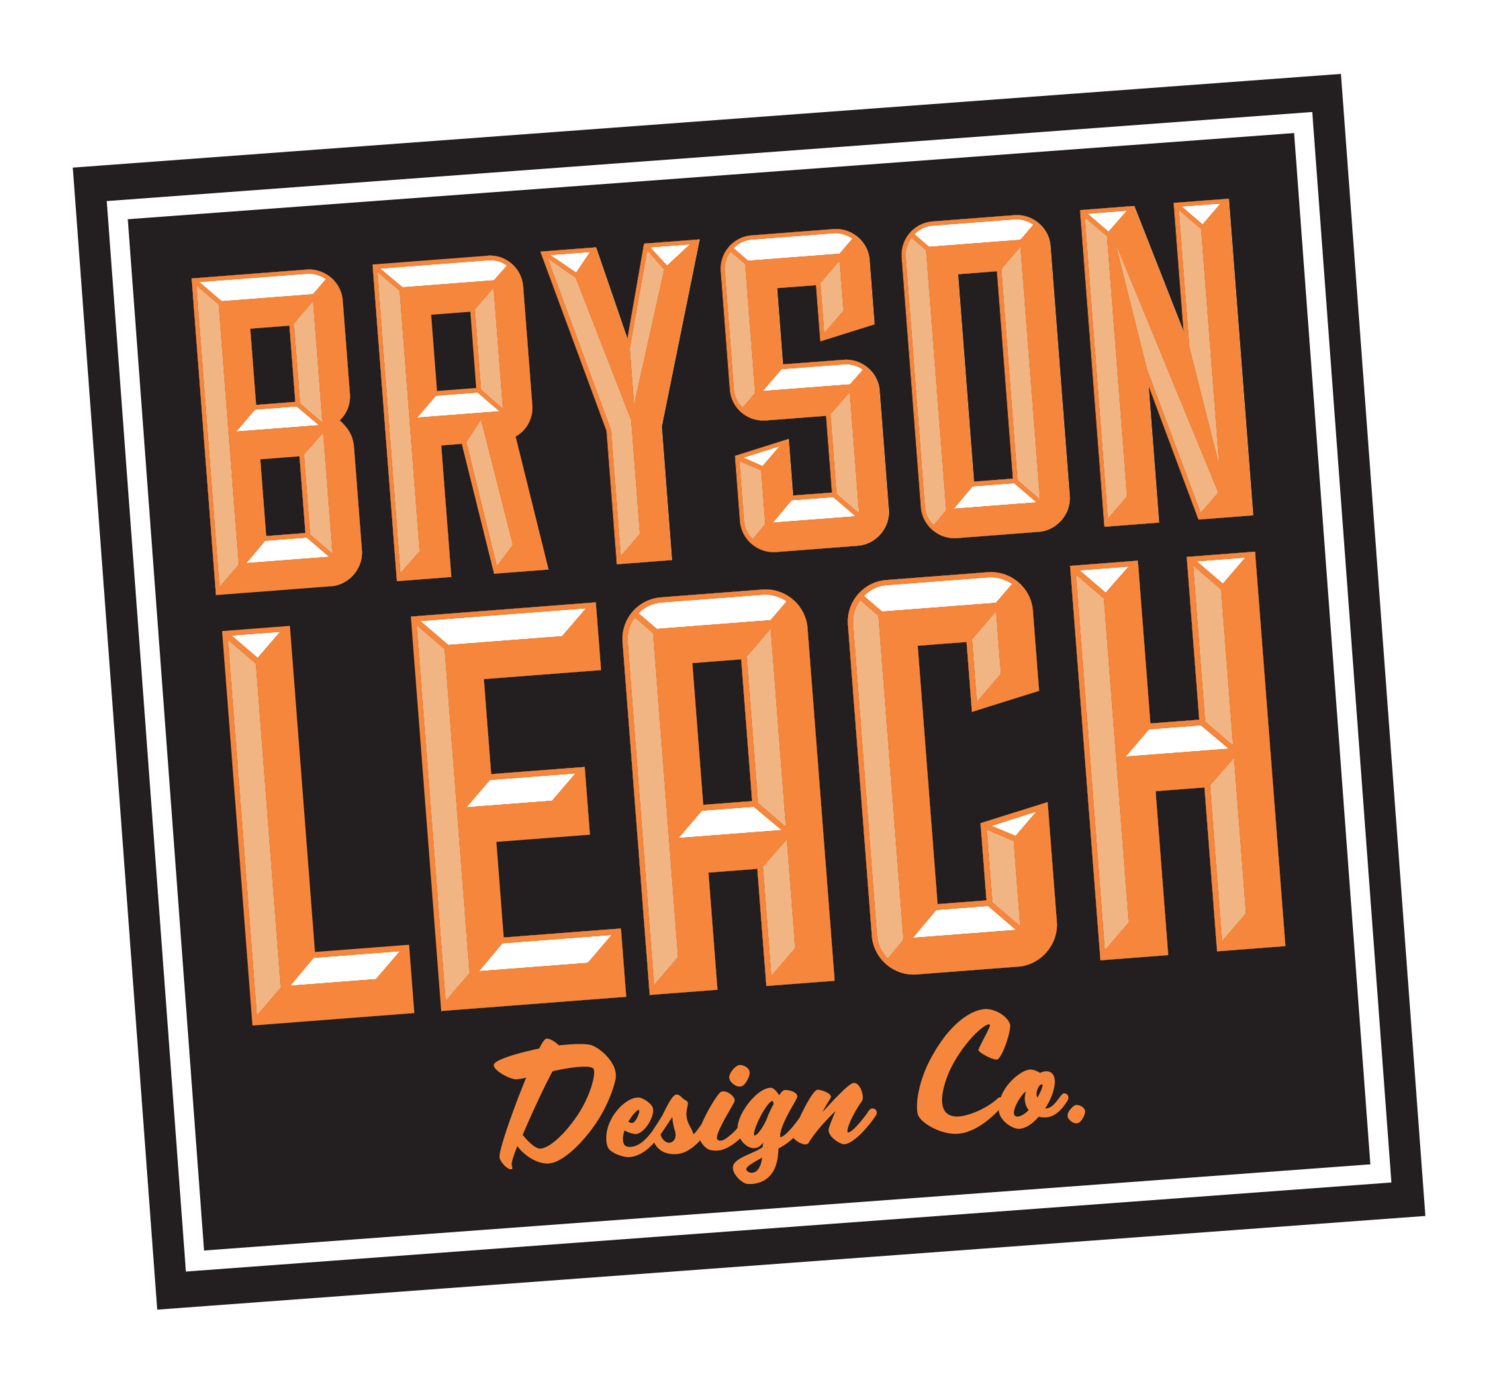 Bryson Leach Design Co. | Creative Works for Small Business | Columbia, TN